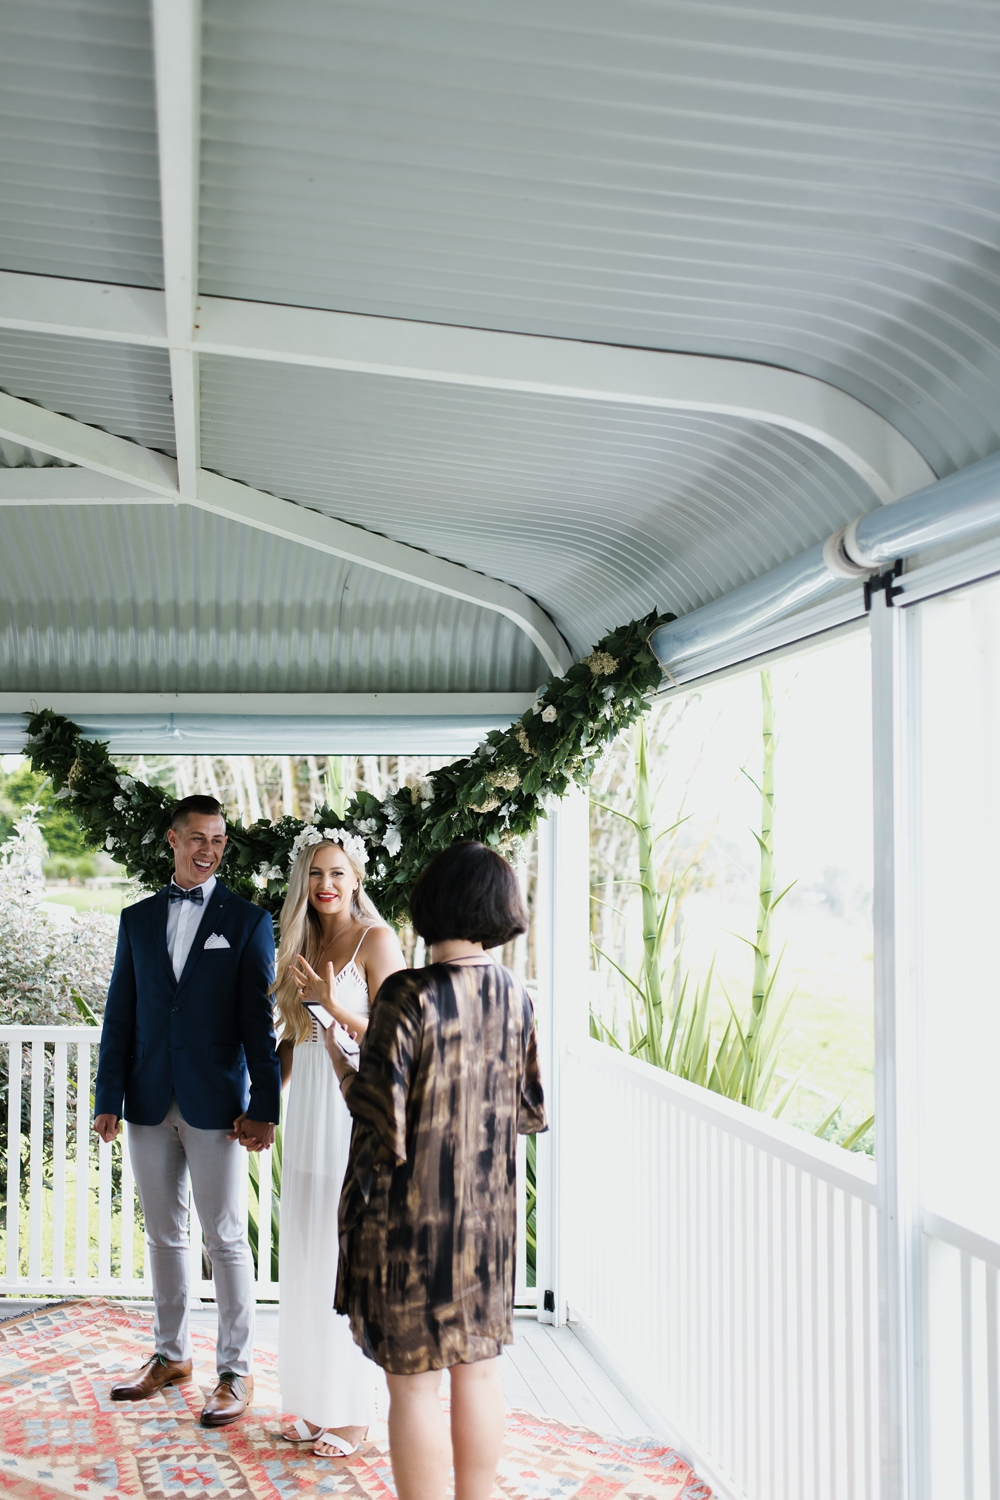 715-Byron-Bay-Wedding-Photographer-Carly-Tia-Photography.jpg